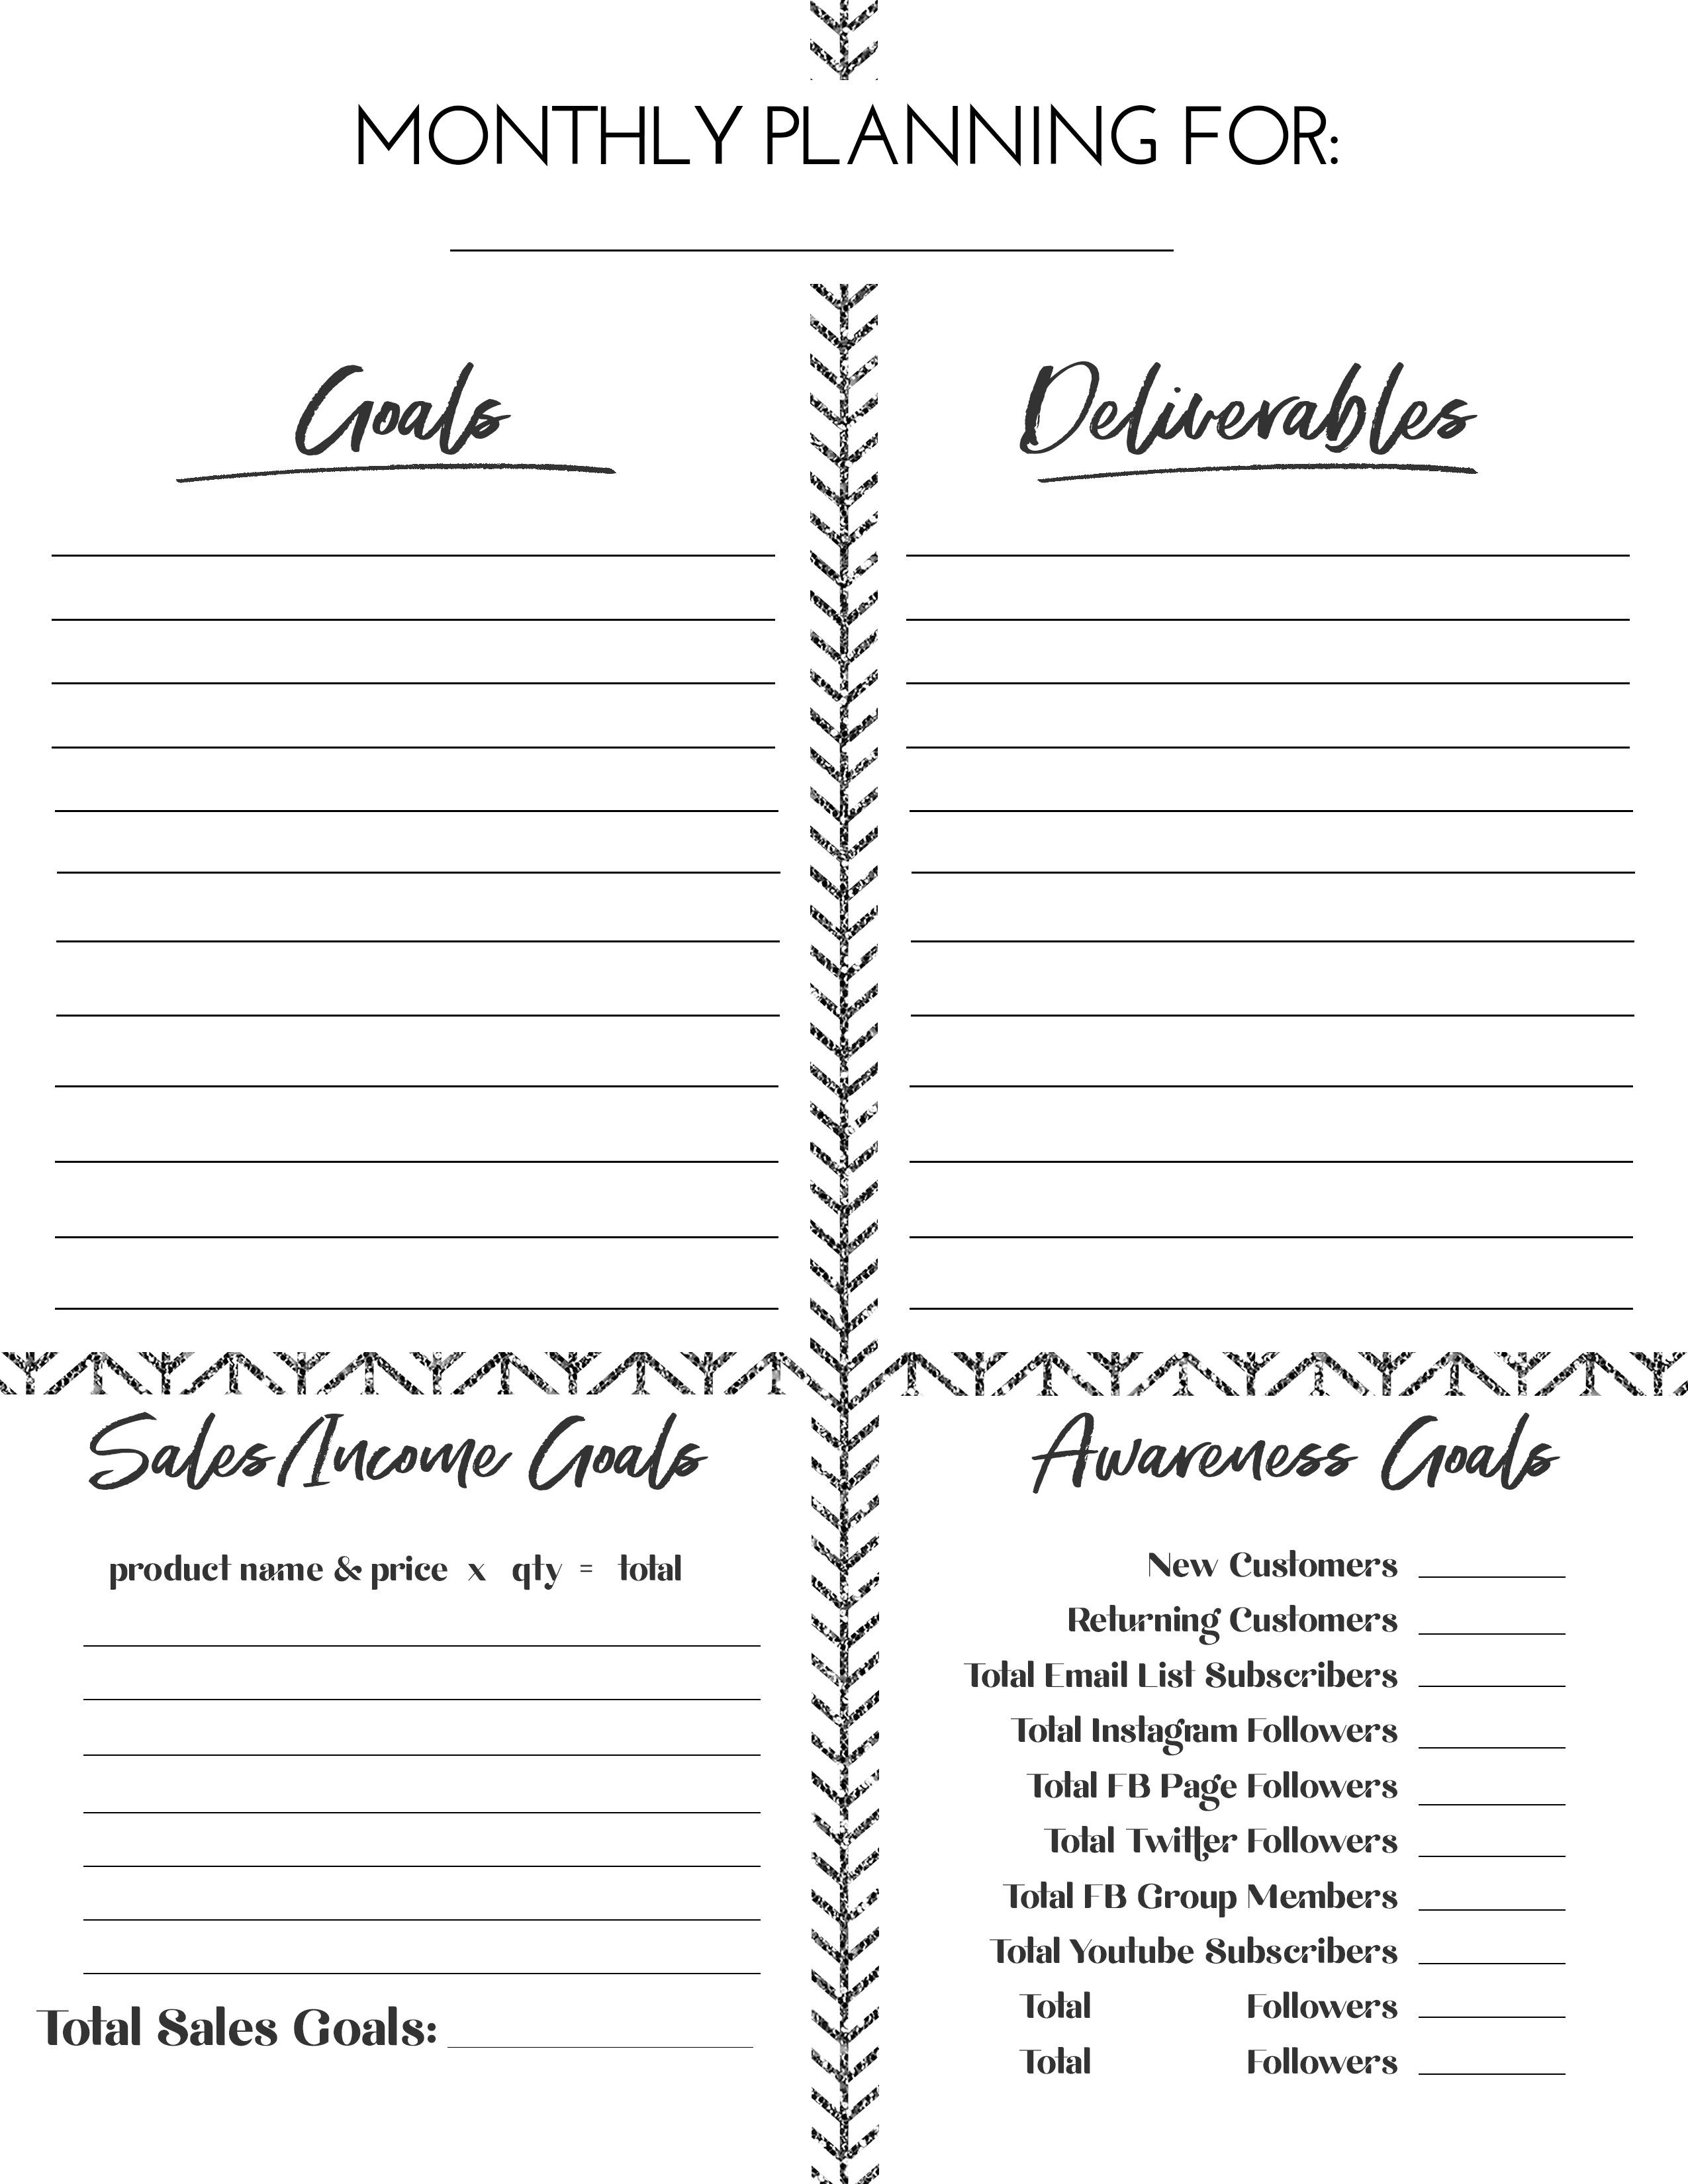 monthly goal planning